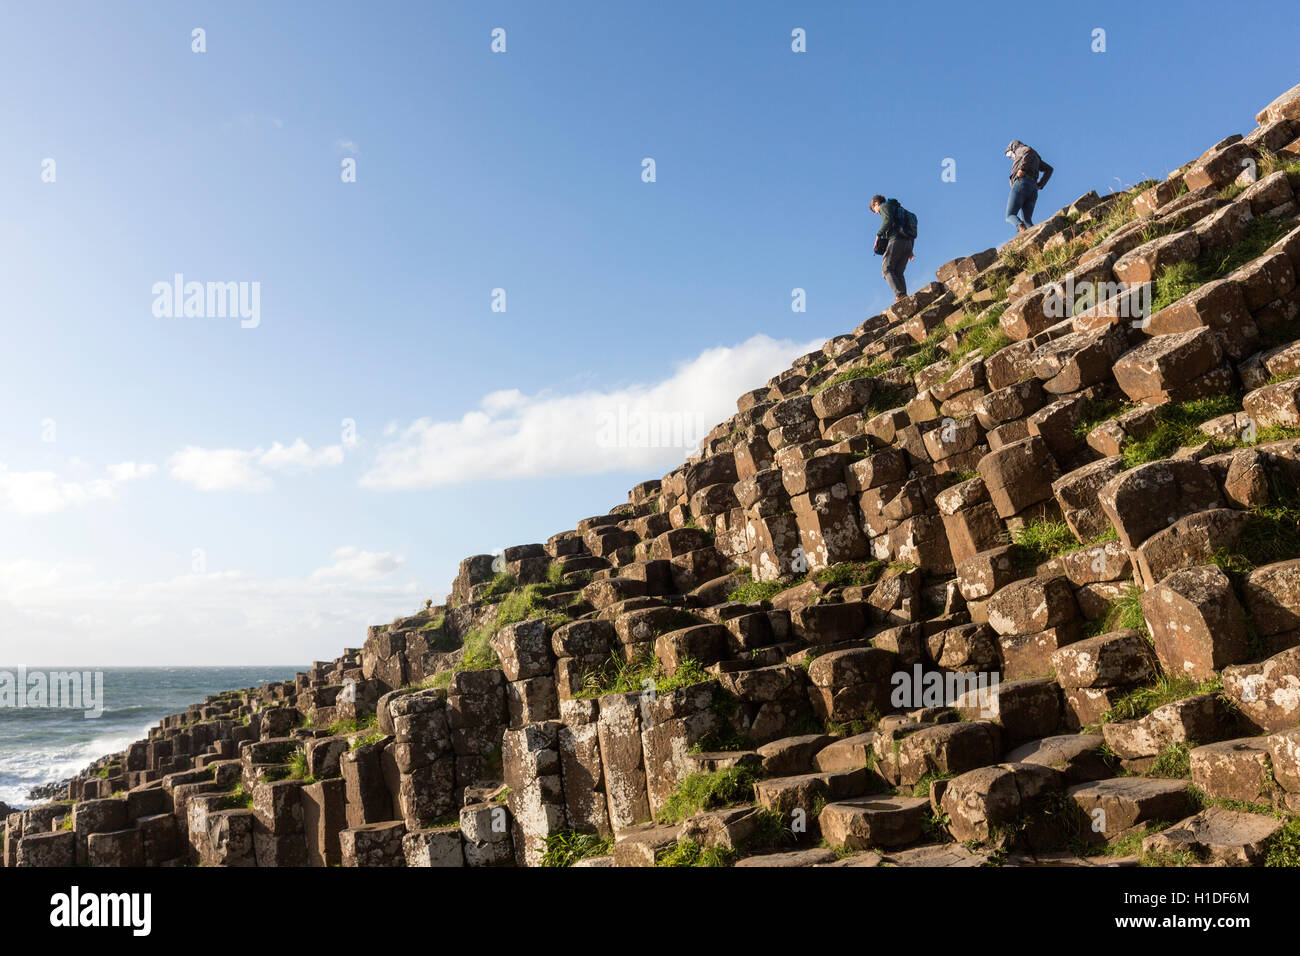 Tourist standing on basalt columns in Giant's Causeway, Bushmills, County Antrim, Northern Ireland, UK - Stock Image